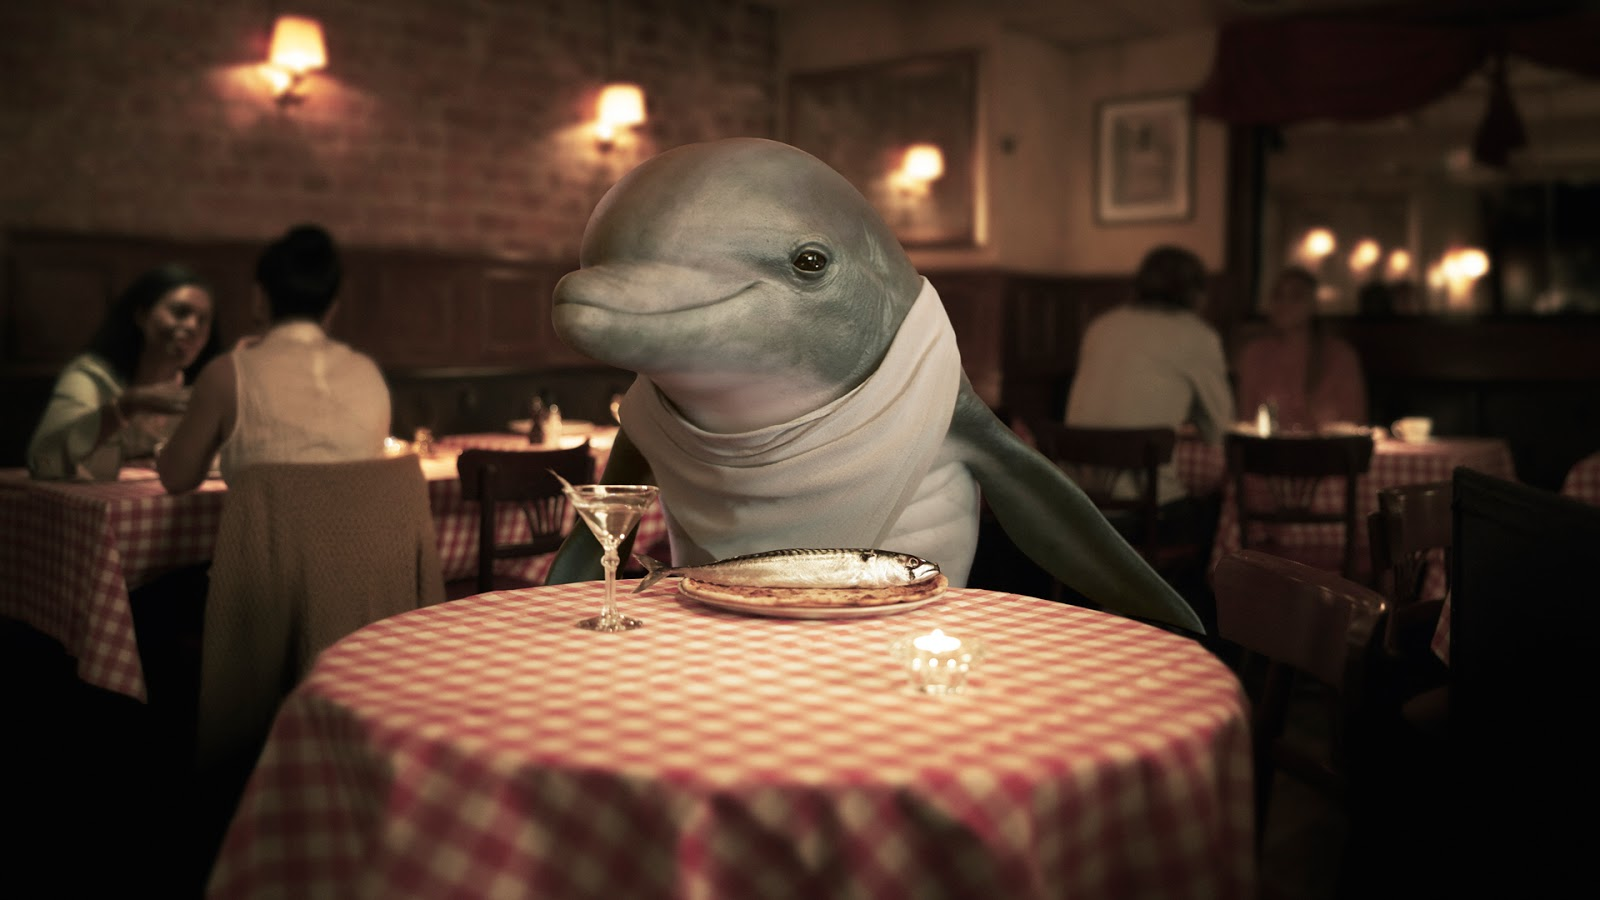 Hyped Fintech Anyfin Attacks Loan Sharks With New Spokesdolphin Adstasher